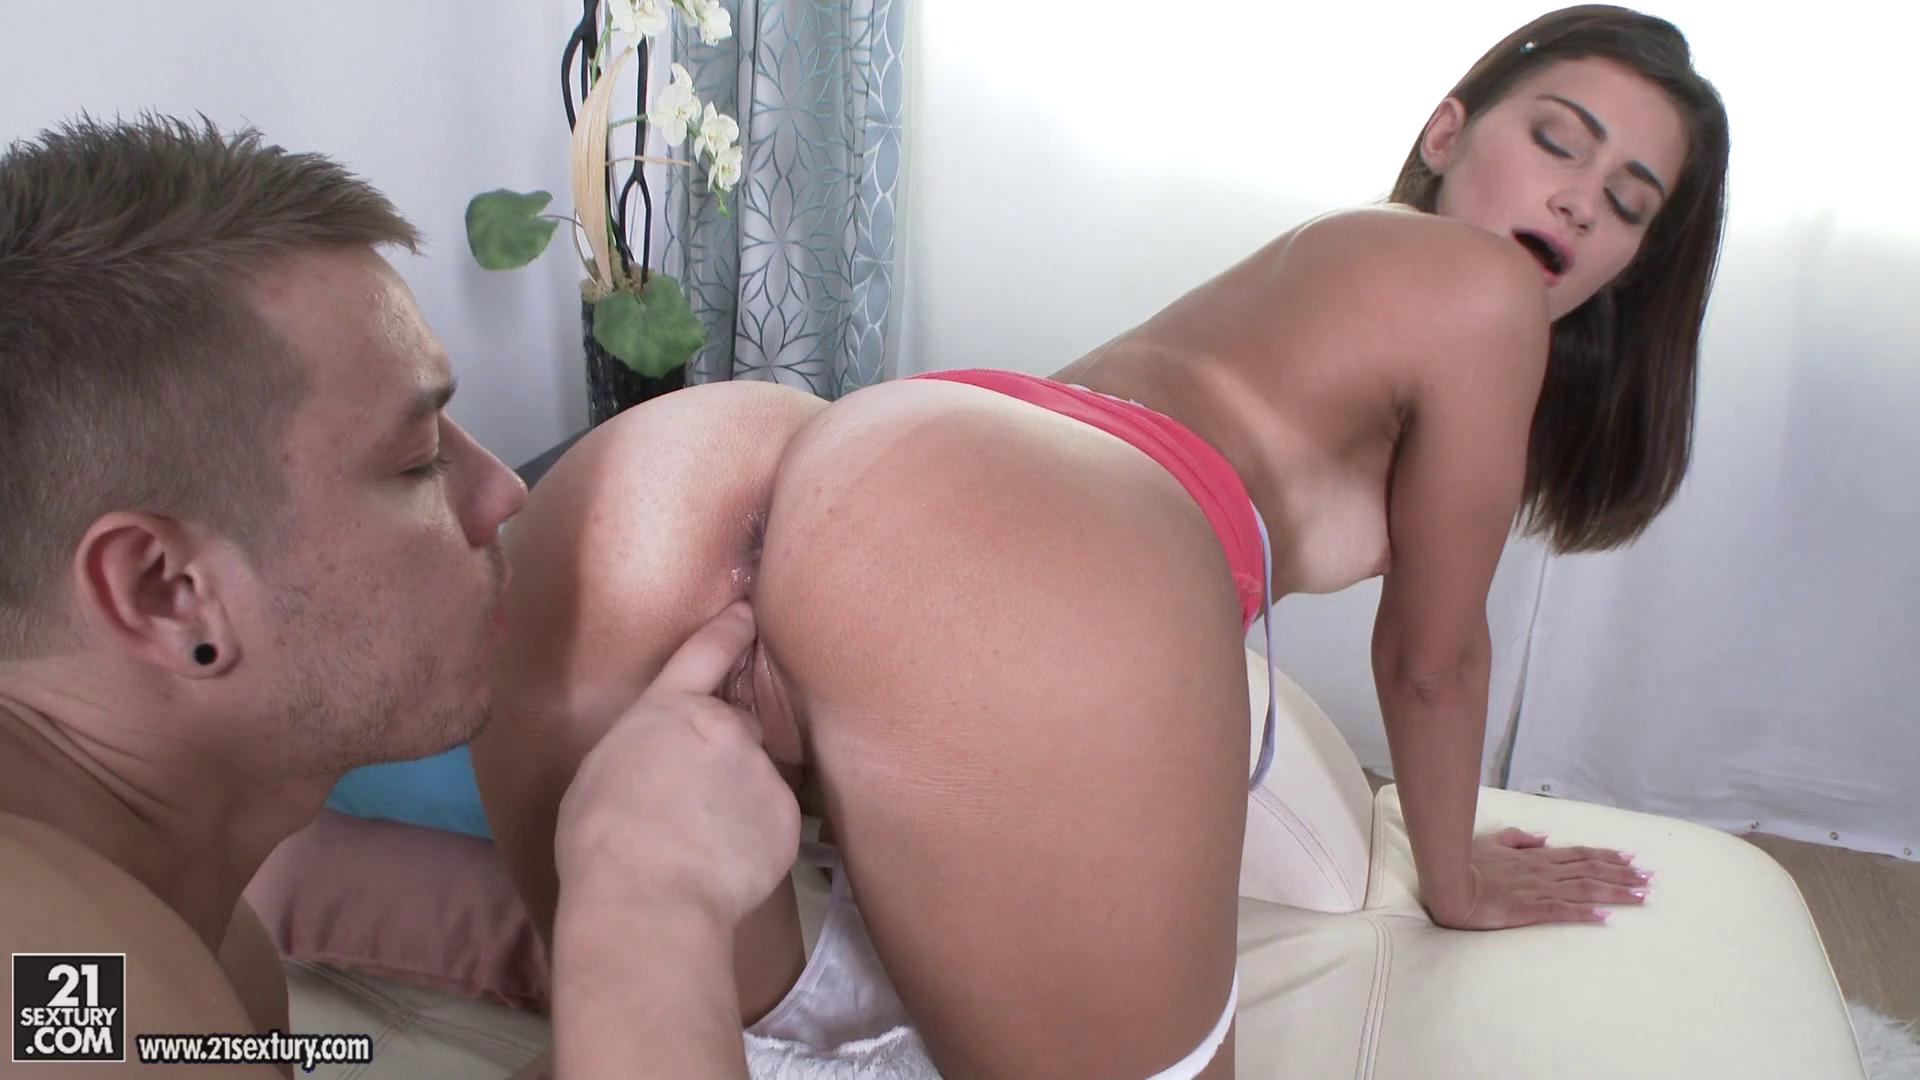 AnalTeenAngels – Alexi Star Open My Tight Ass